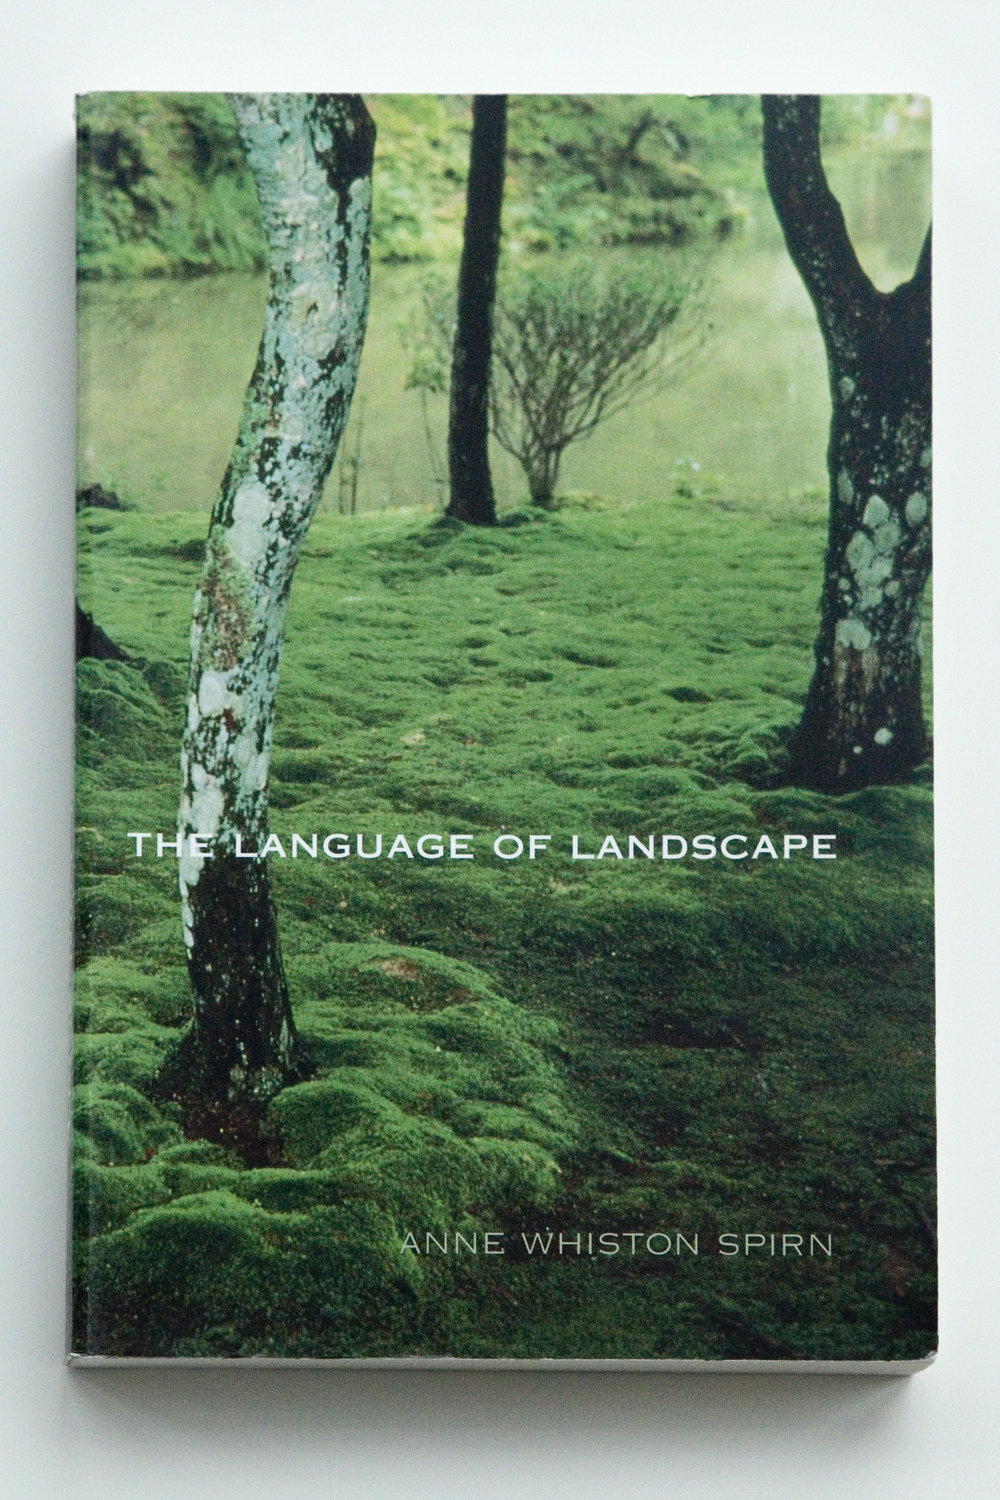 The Language of Landscape was published in 2000. Photo credit: Anne Whiston Spirn